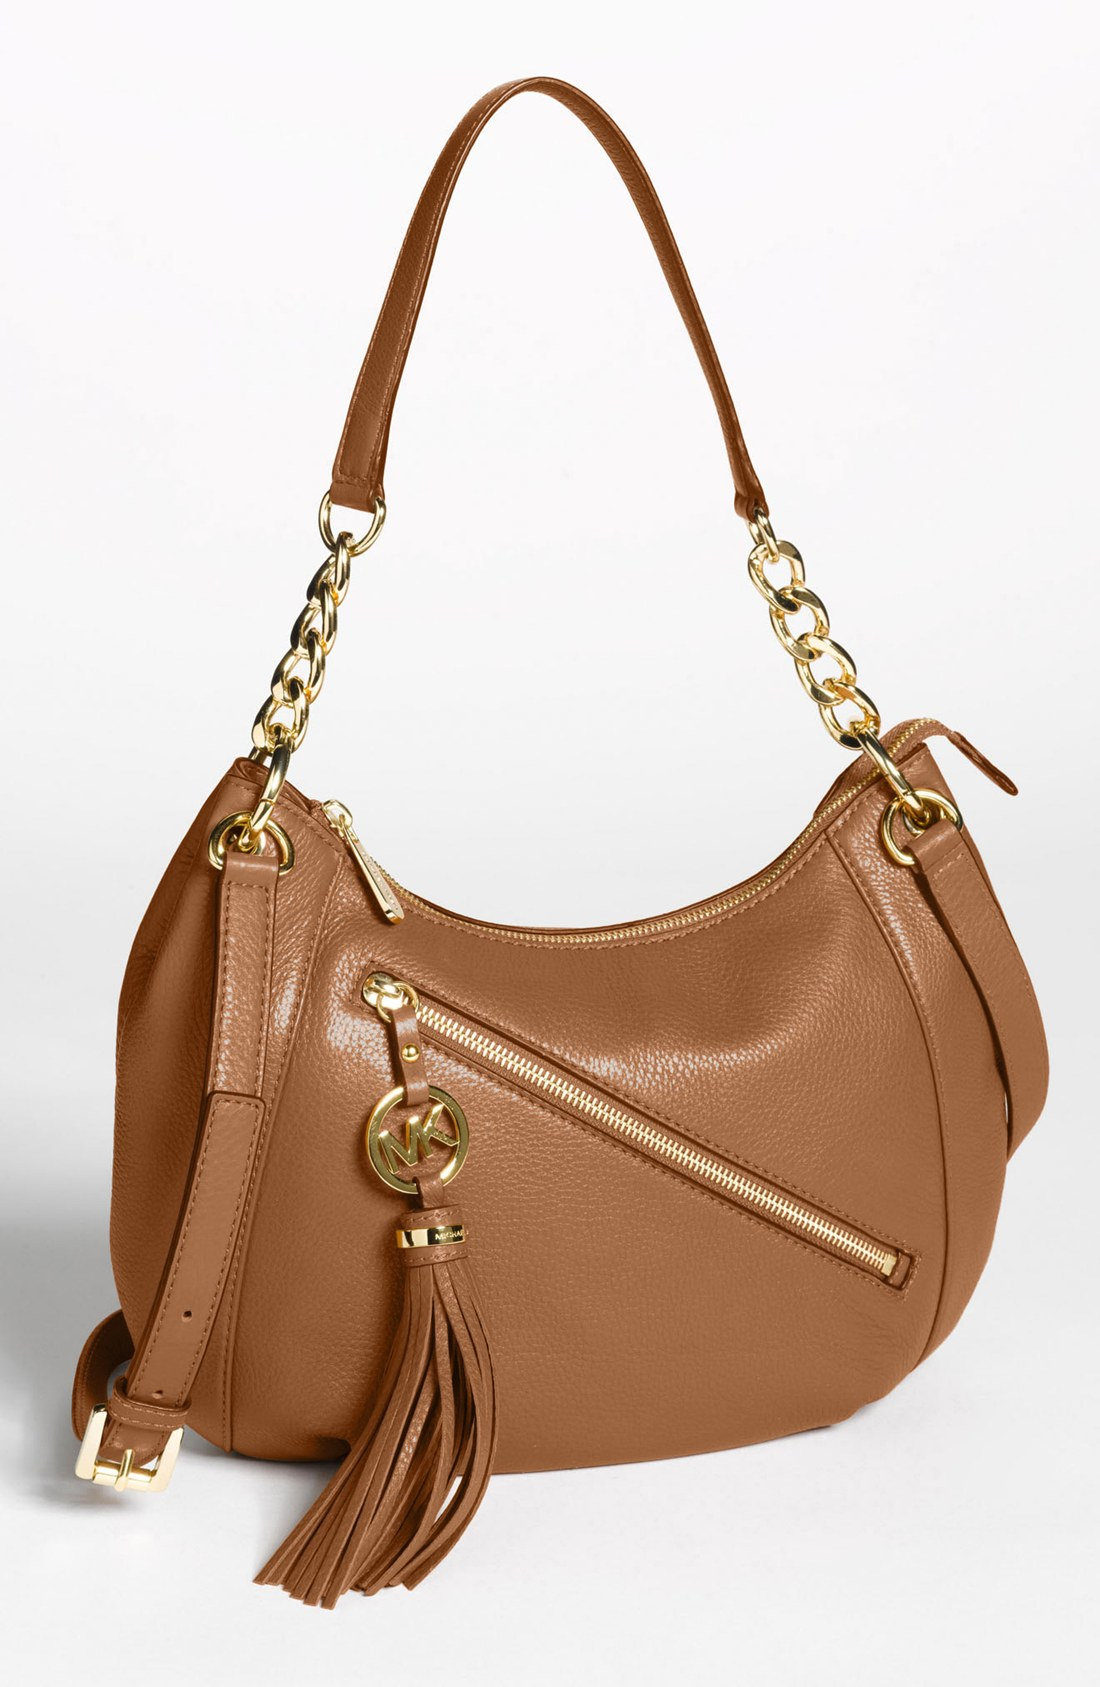 40fdb307e366a1 Michael Kors Bag With Tassel | Stanford Center for Opportunity ...